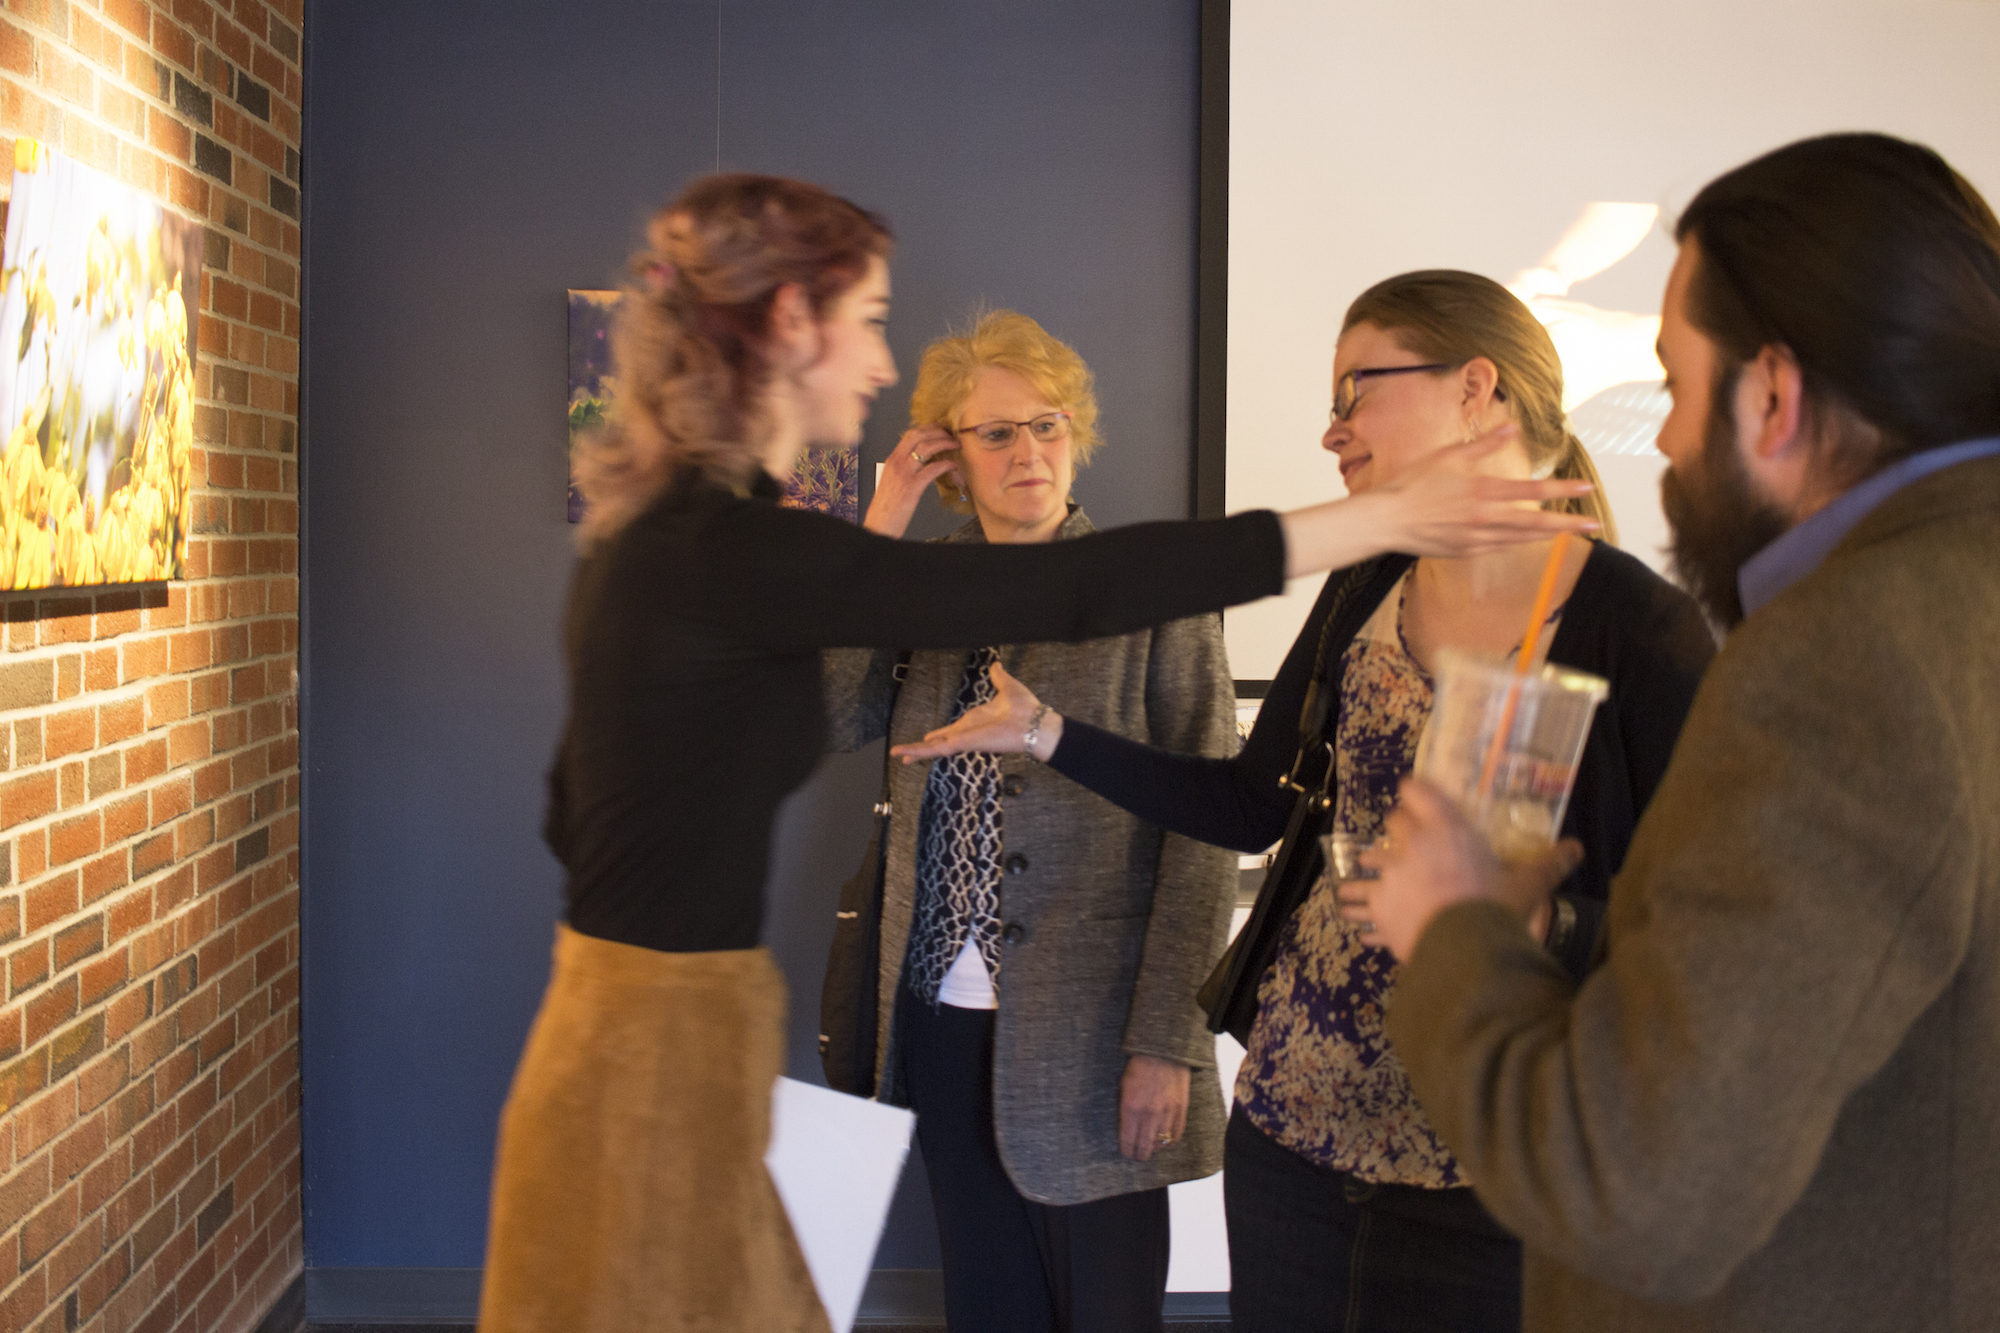 Geena Matuson's solo show reception at Medfield TV. Going in for a librarian hug! April, 2016.